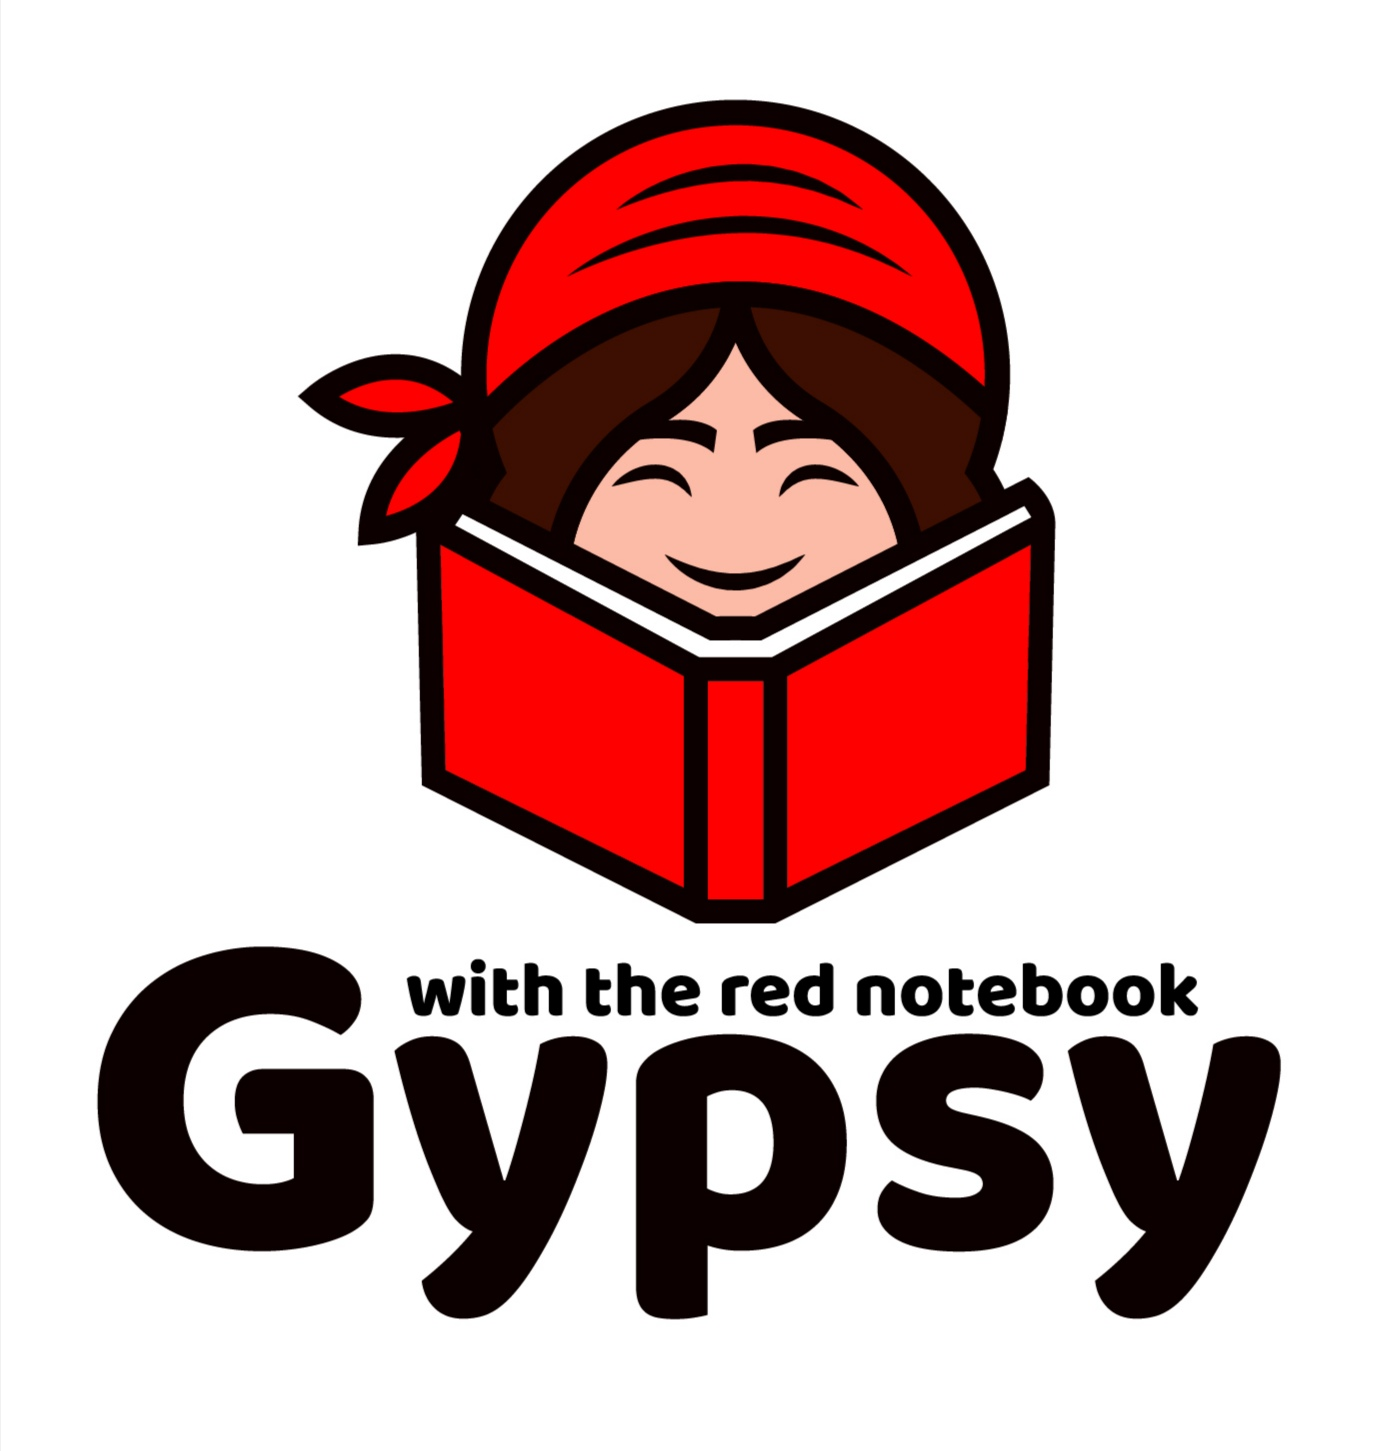 The Gypsy with the red notebook